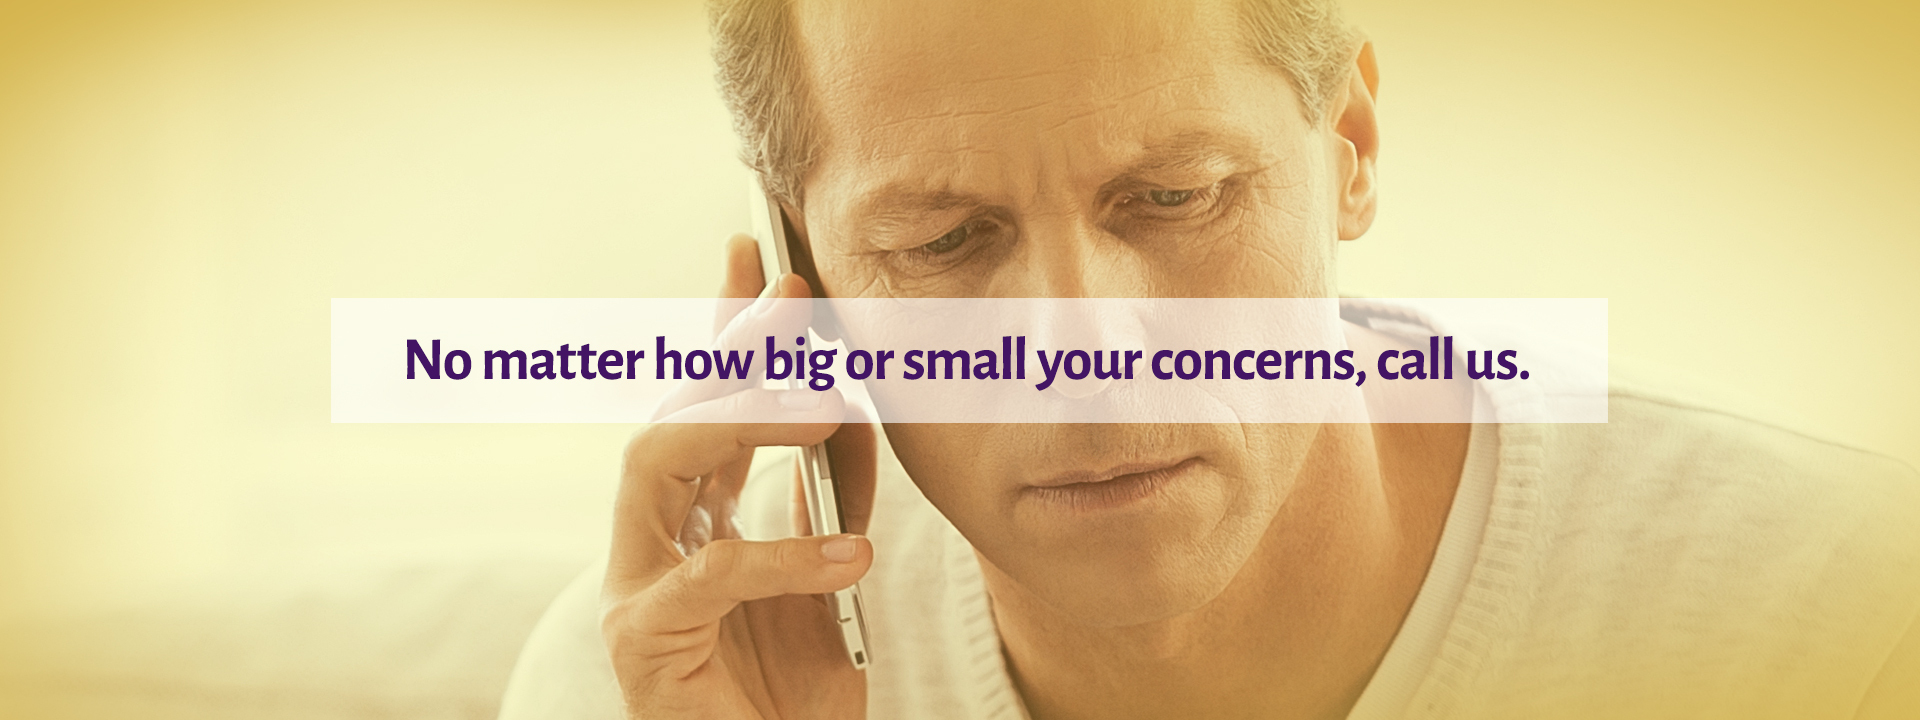 We encourage you to call us no matter how big or small your concerns are.